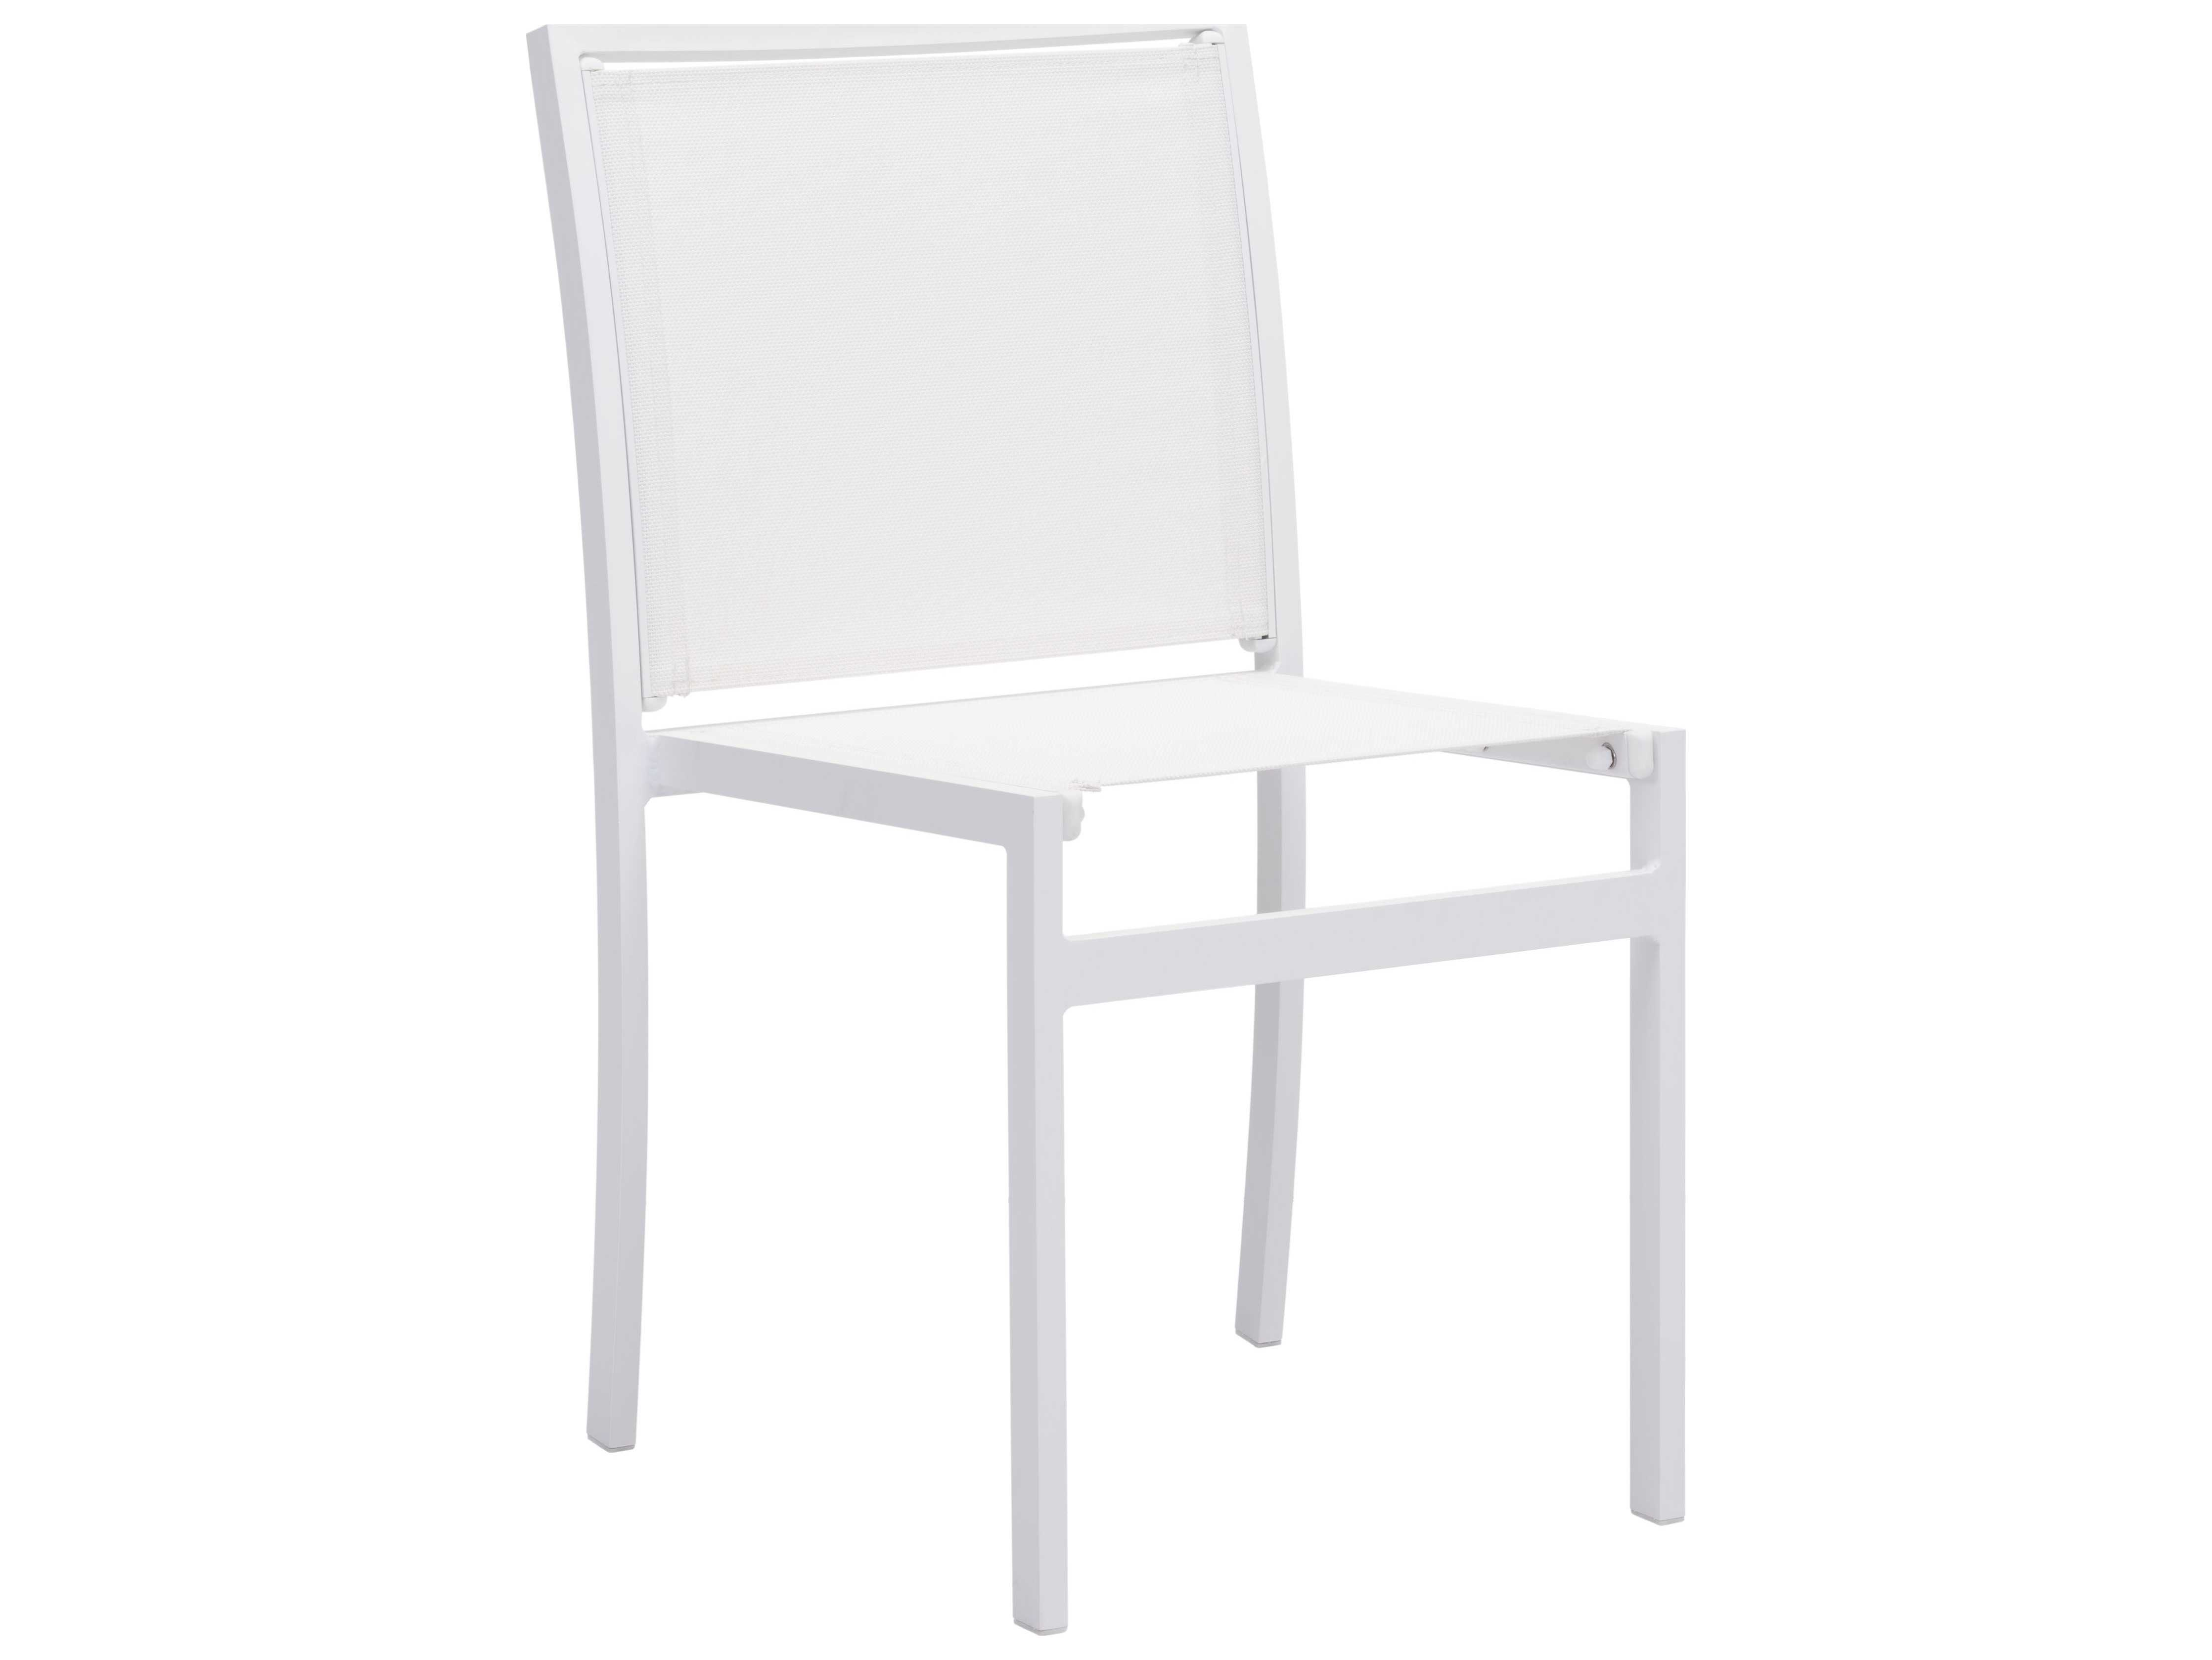 Zuo Outdoor Mayakoba Aluminum Mesh Dining Chair in White Sold in